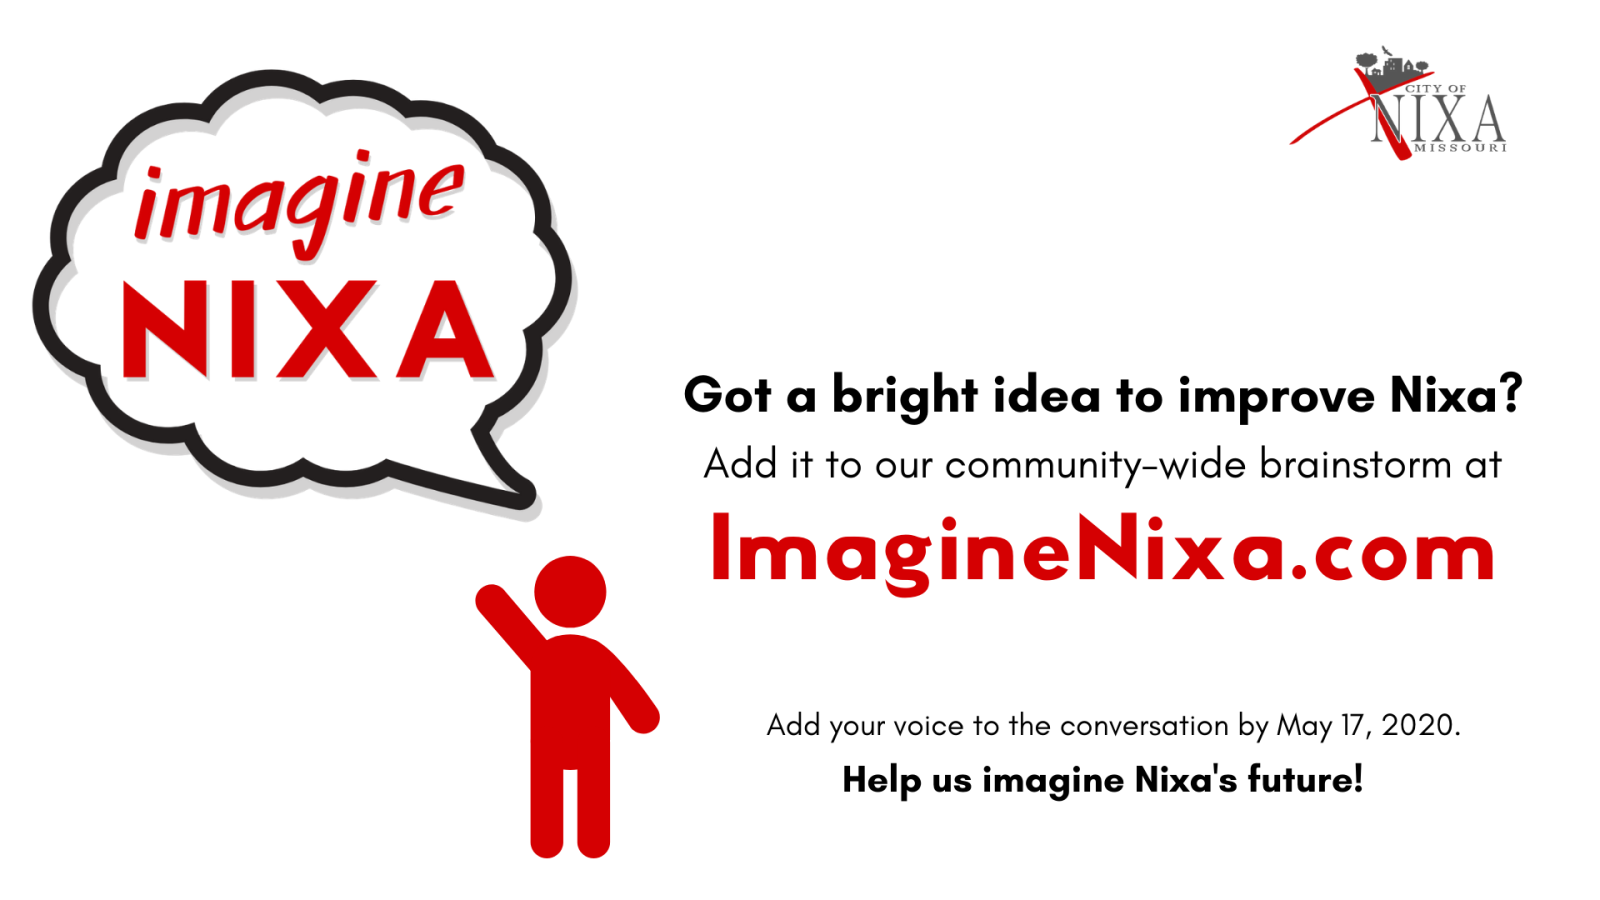 Imagine Nixa promo 16x9